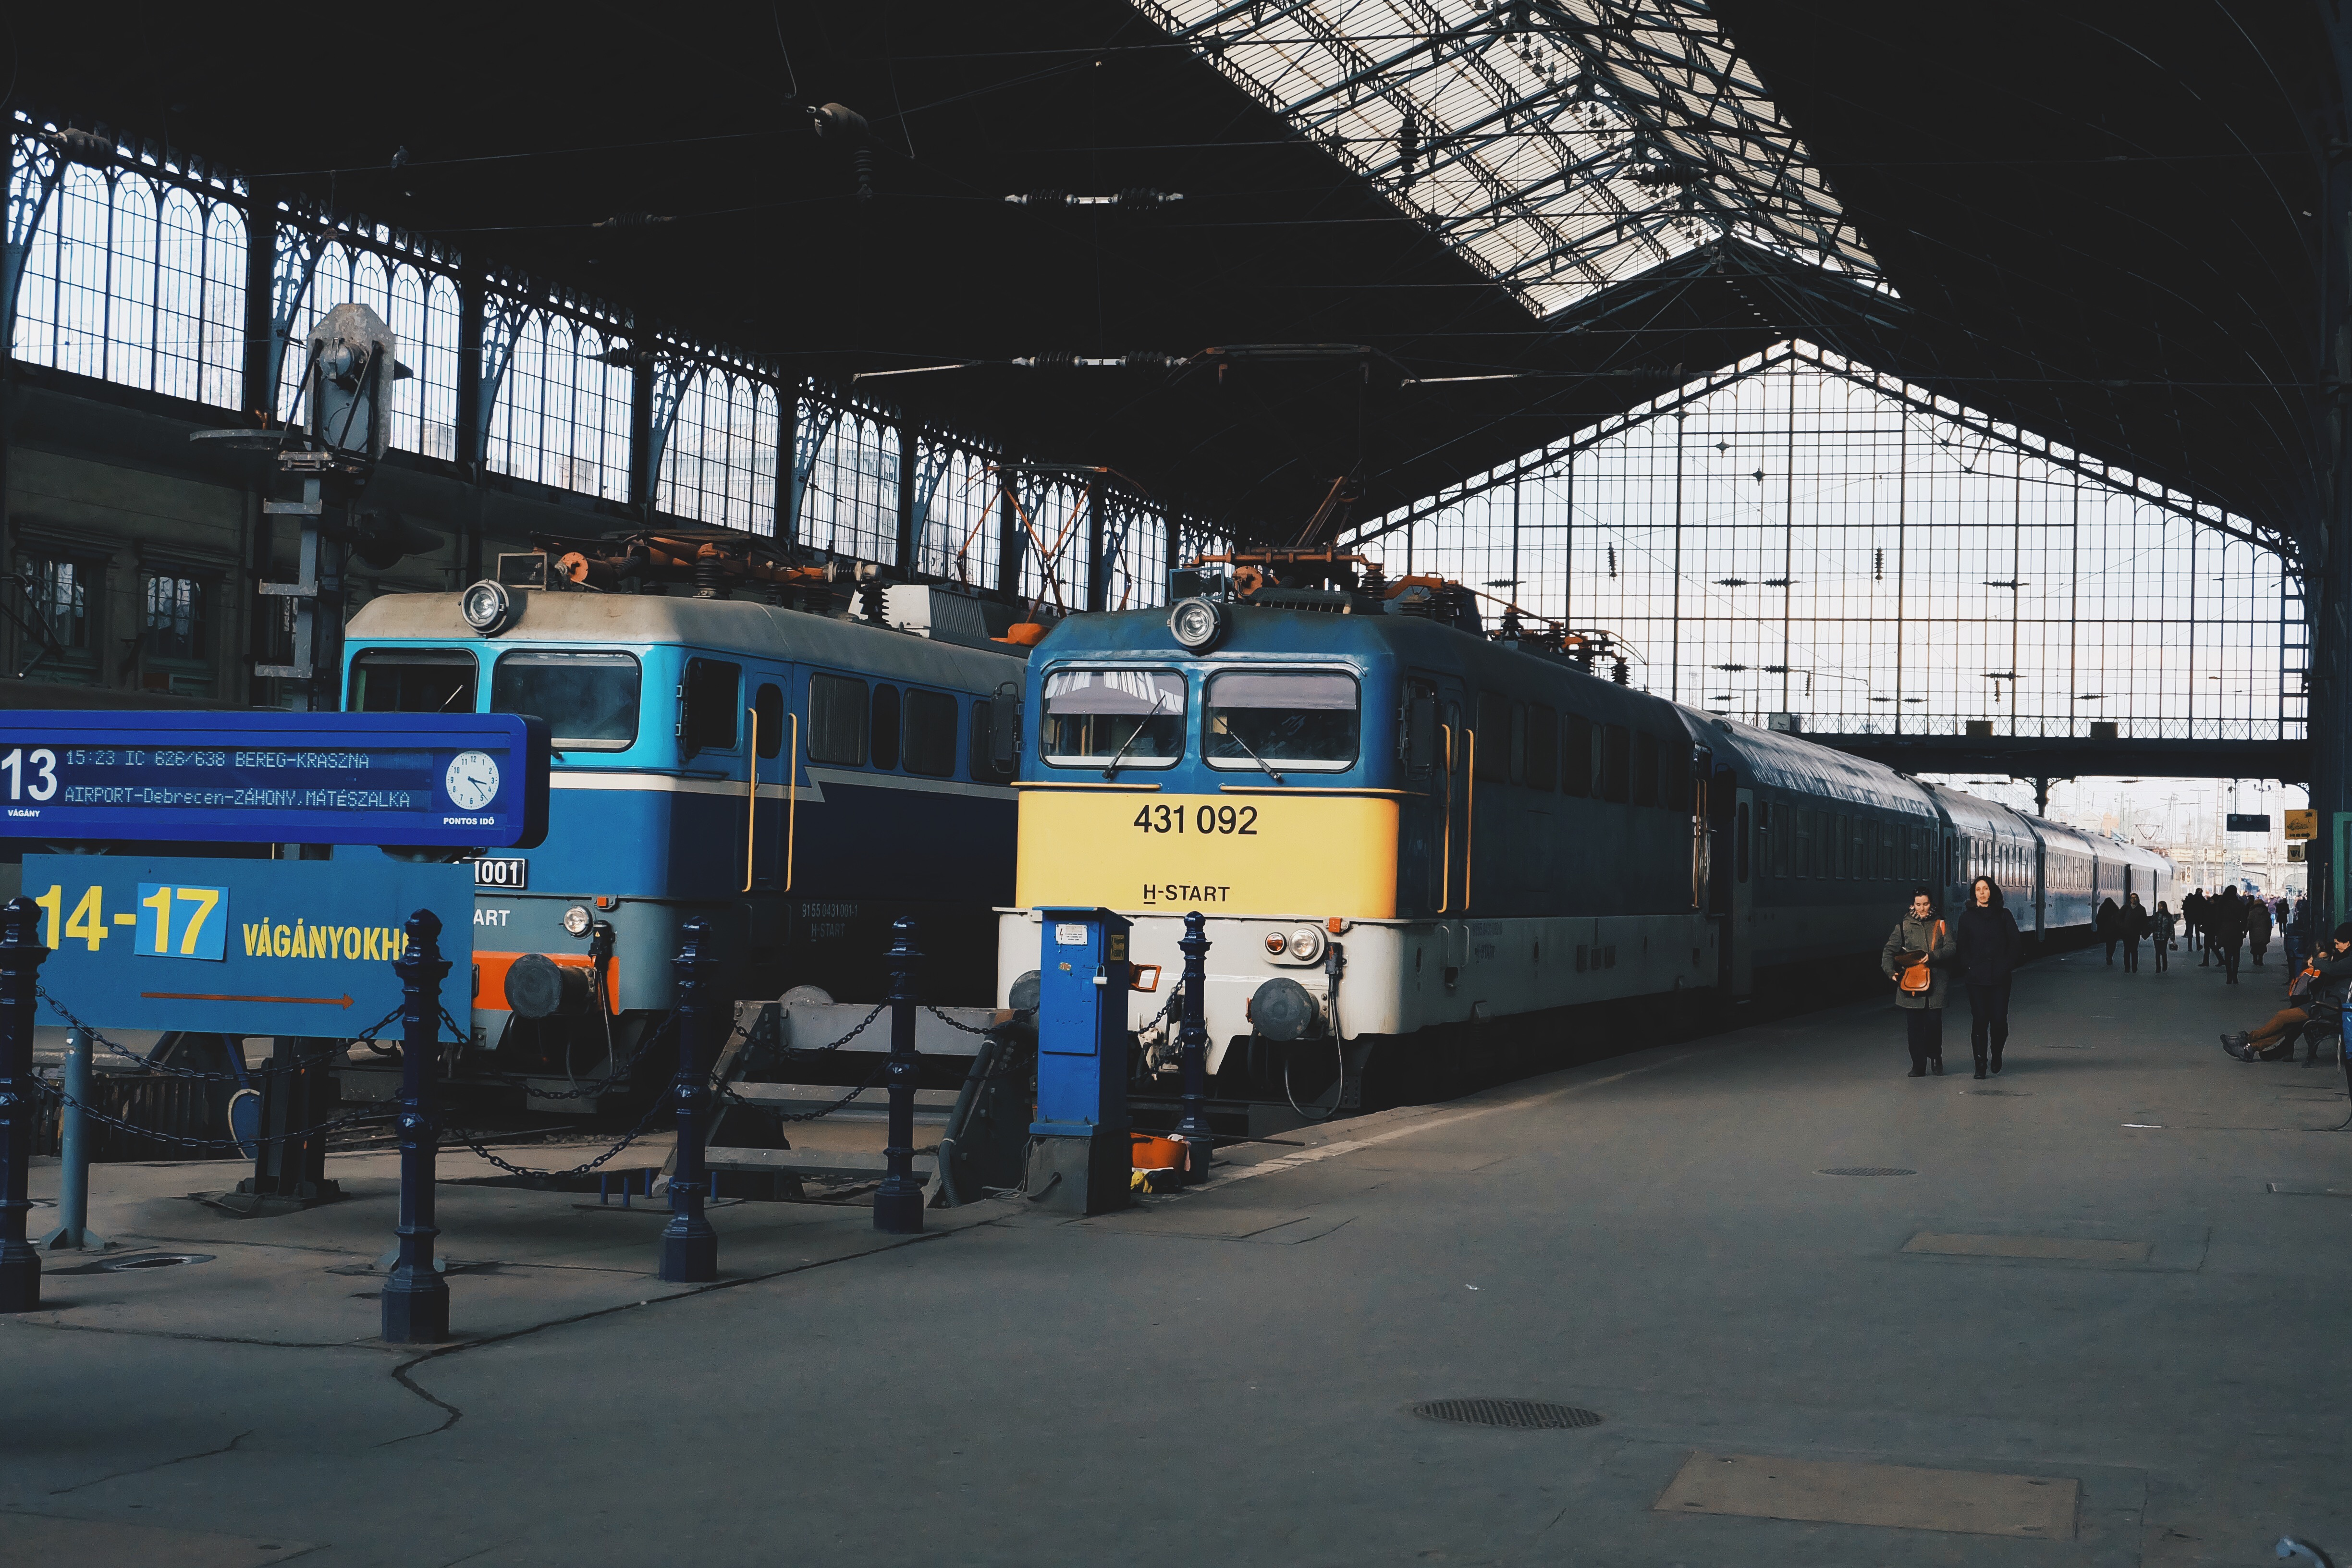 Railway station, trains, train station, transportation, people, machines, barn